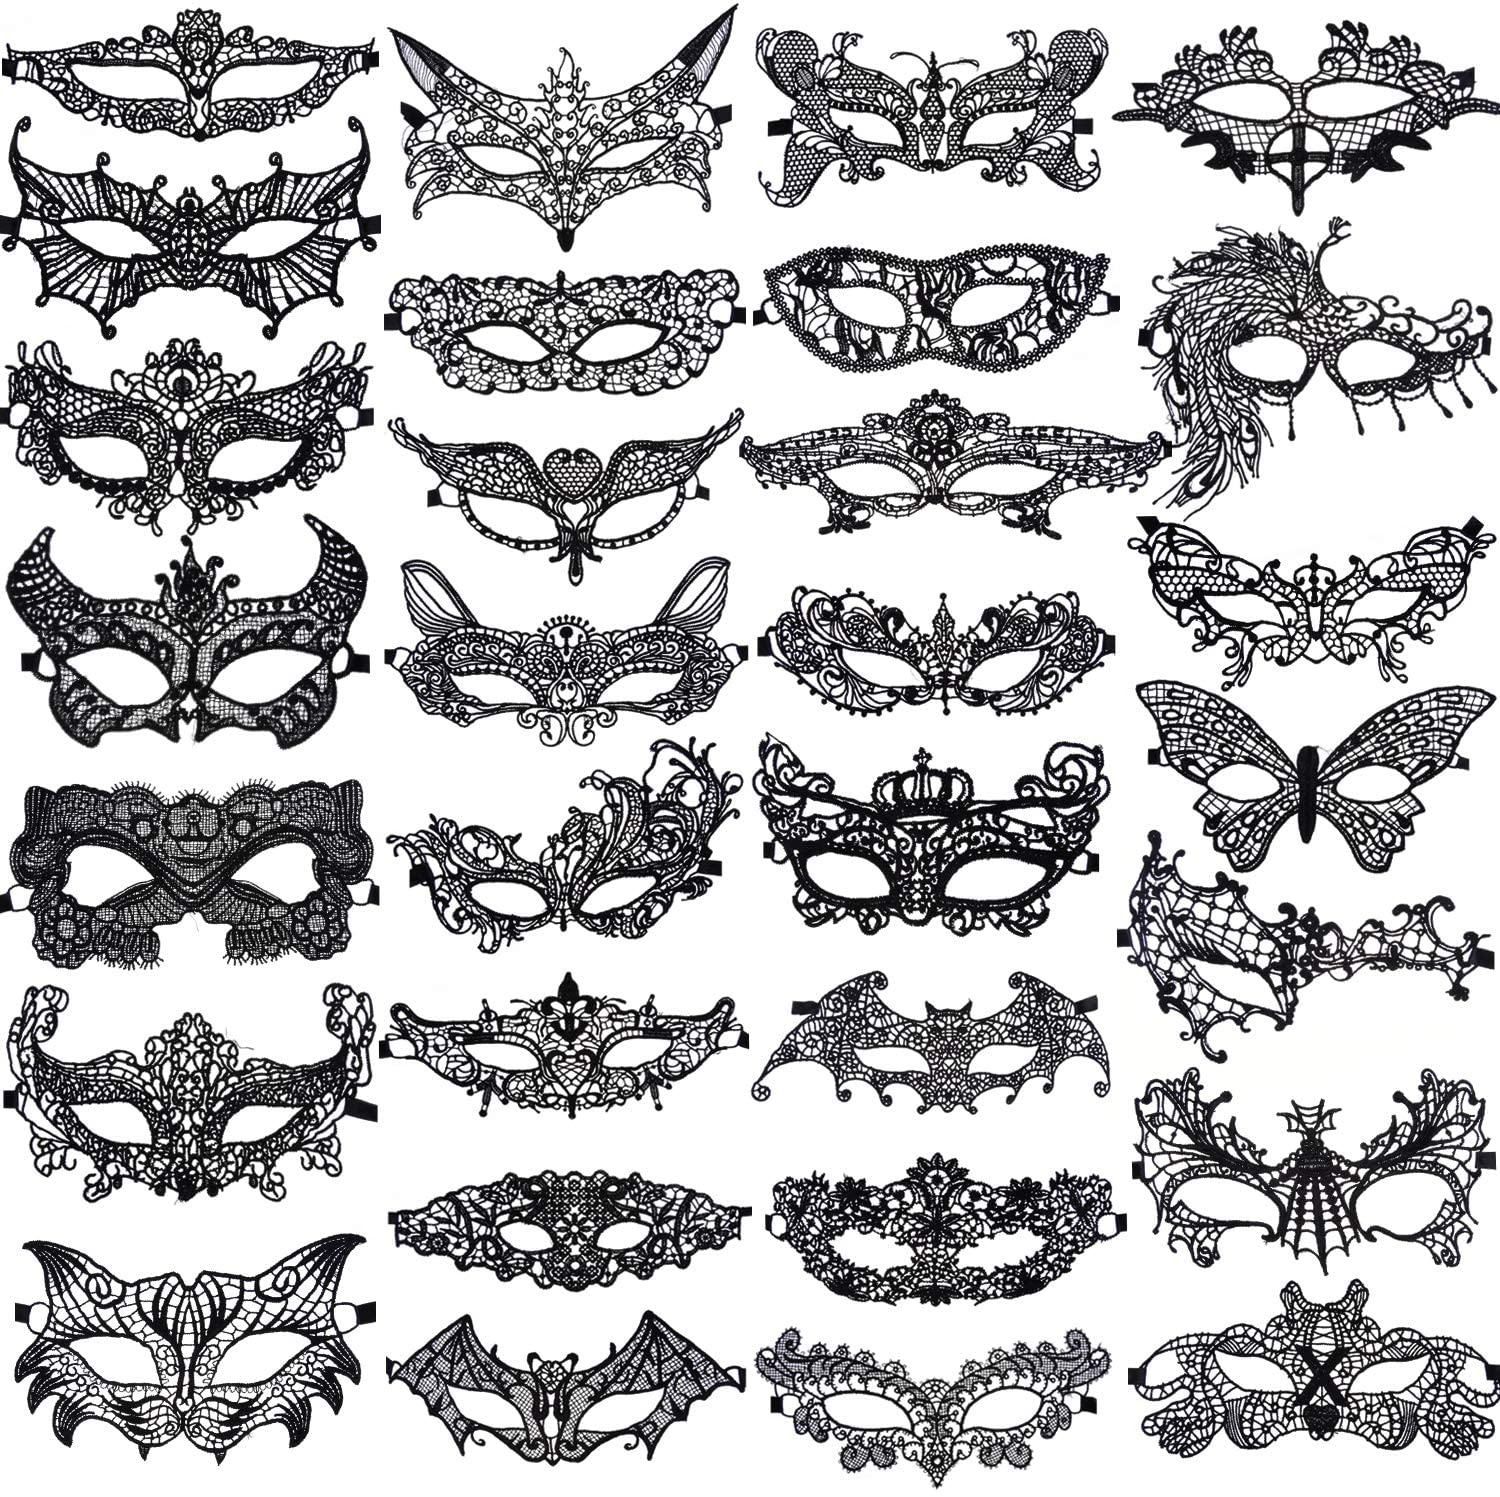 SIQUK 30 Pieces Black Lace Masquerade Mask Women Venetian Masks Lace Mask